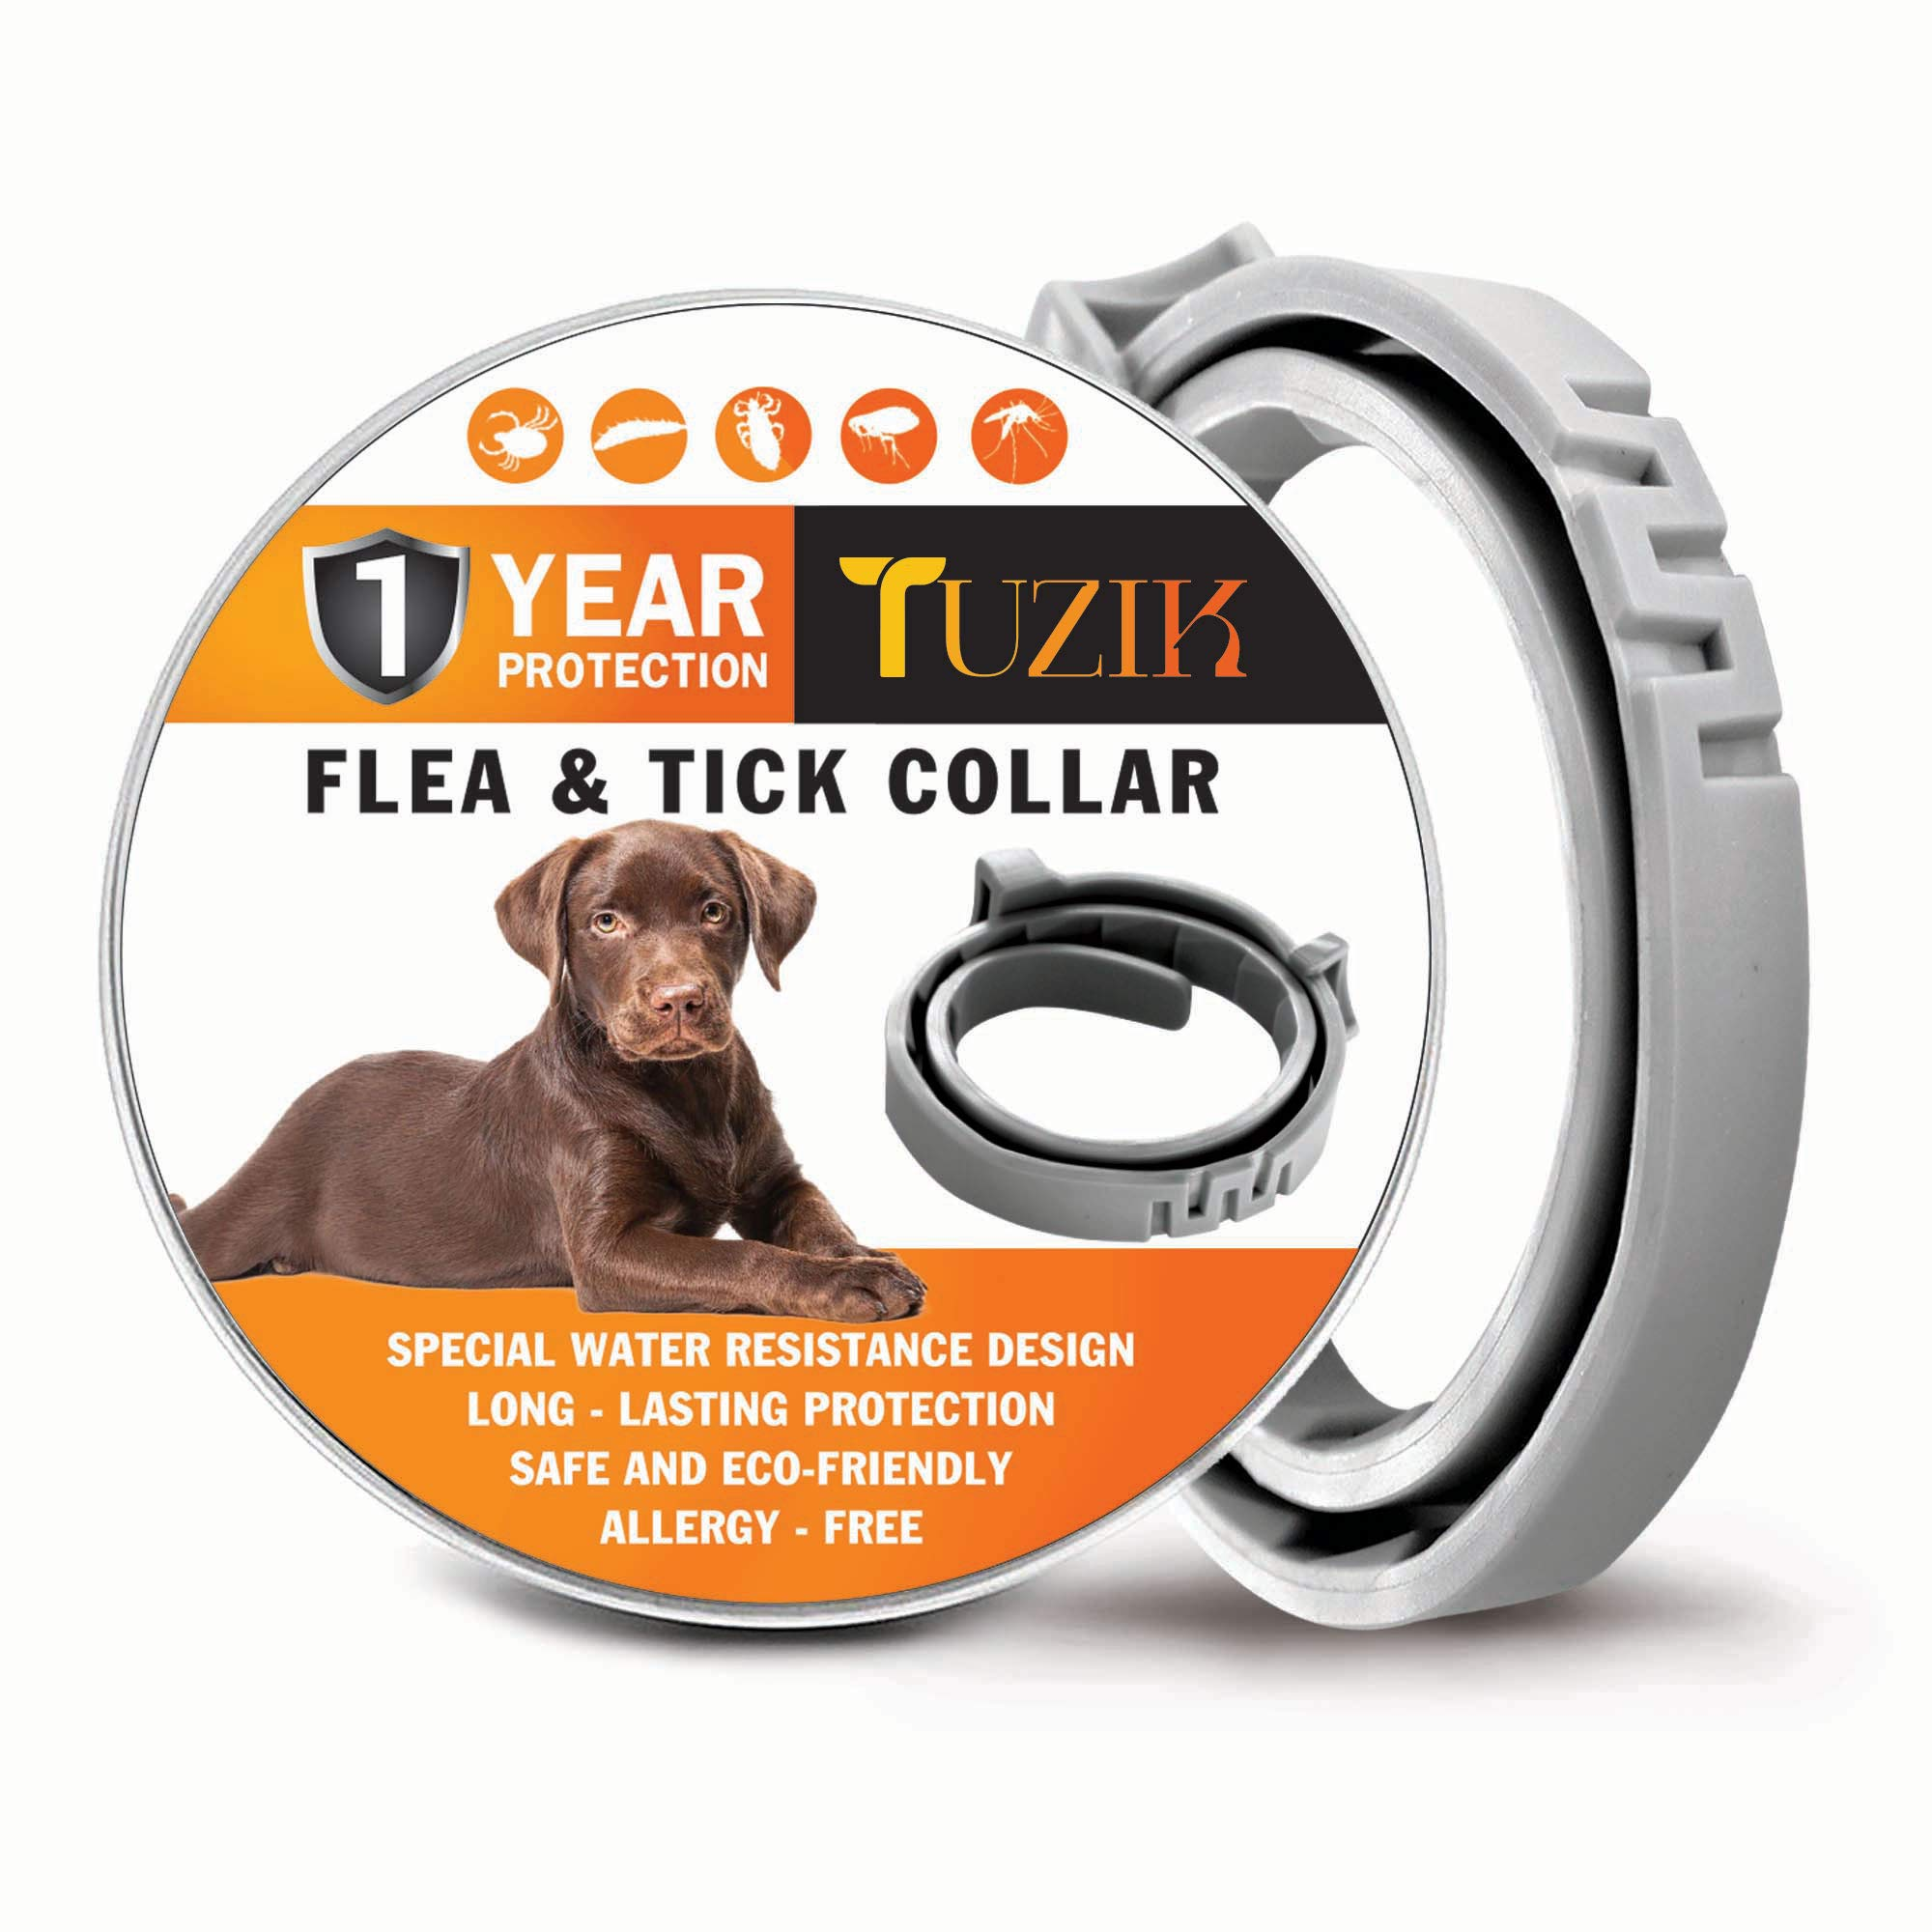 TUZIK Flea Collar for Dogs - 12 Months Flea and Tick Prevention - Dog Flea and Tick Treatment - Stable, Durable and Waterproof Flea and Tick Collar